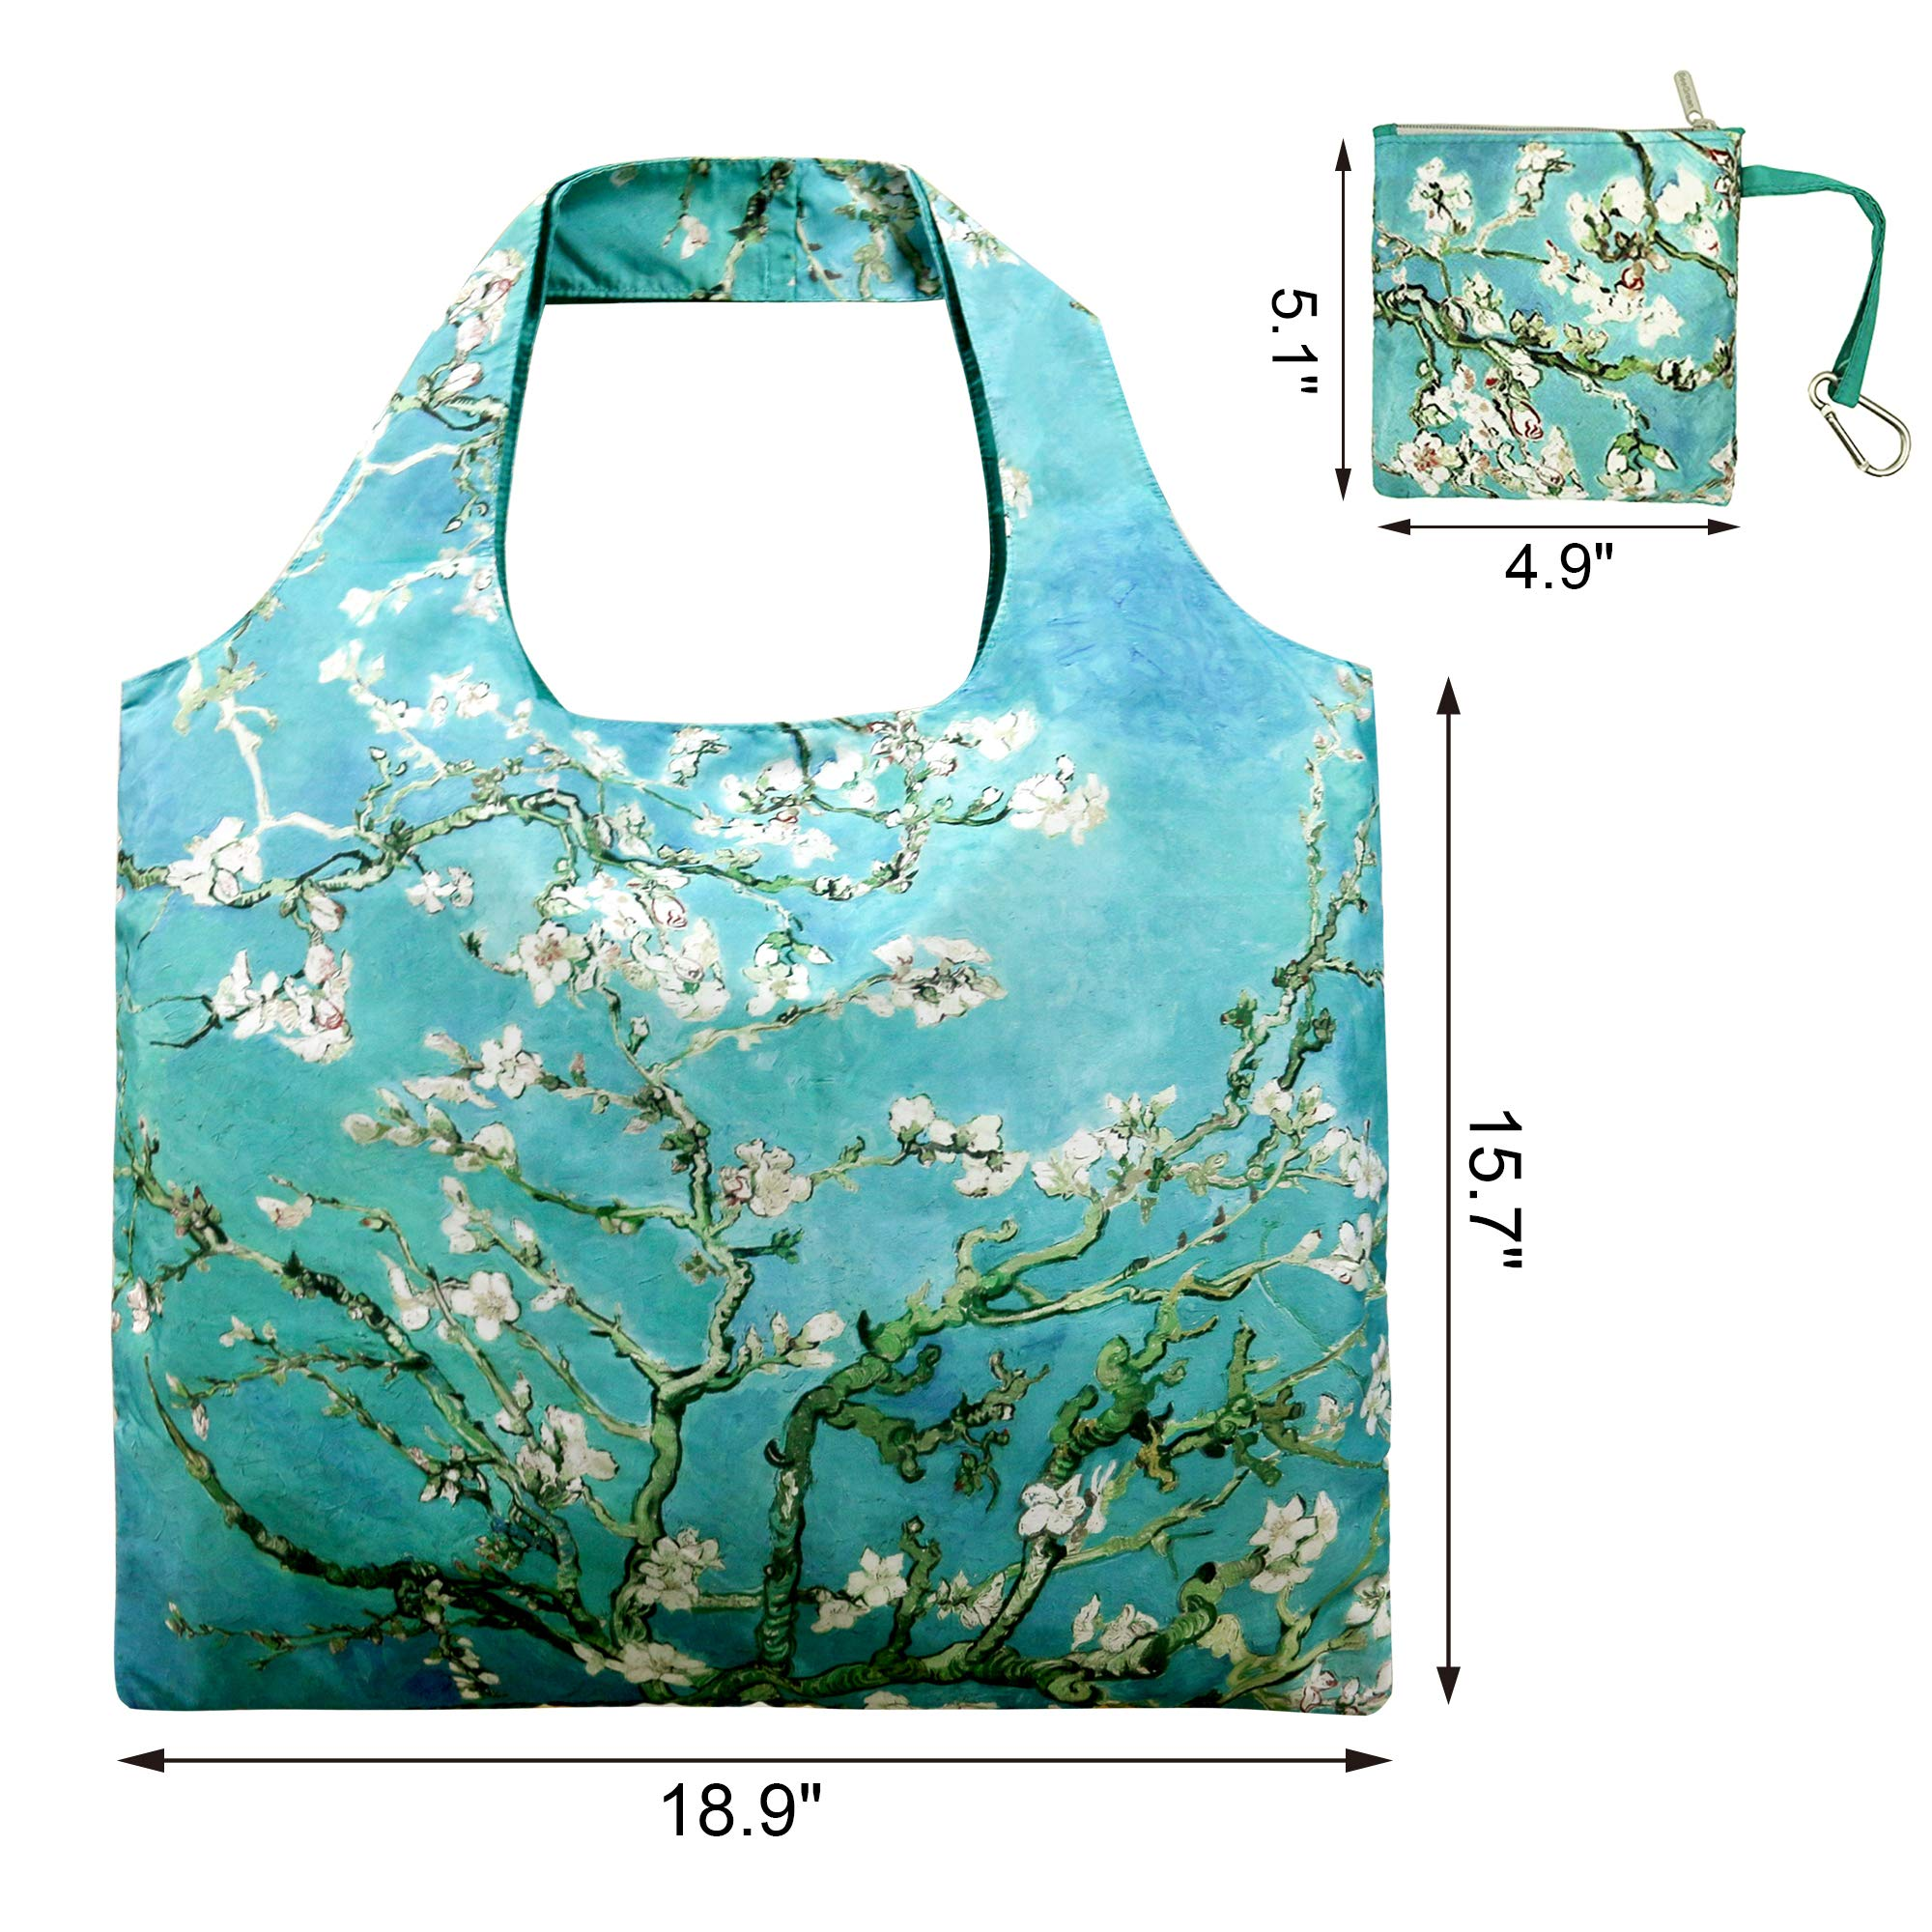 Reusable Grocery Bags with Zipper Closure,Foldable into Zippered Pocket … (Apricot tree) by BeeGreen (Image #4)